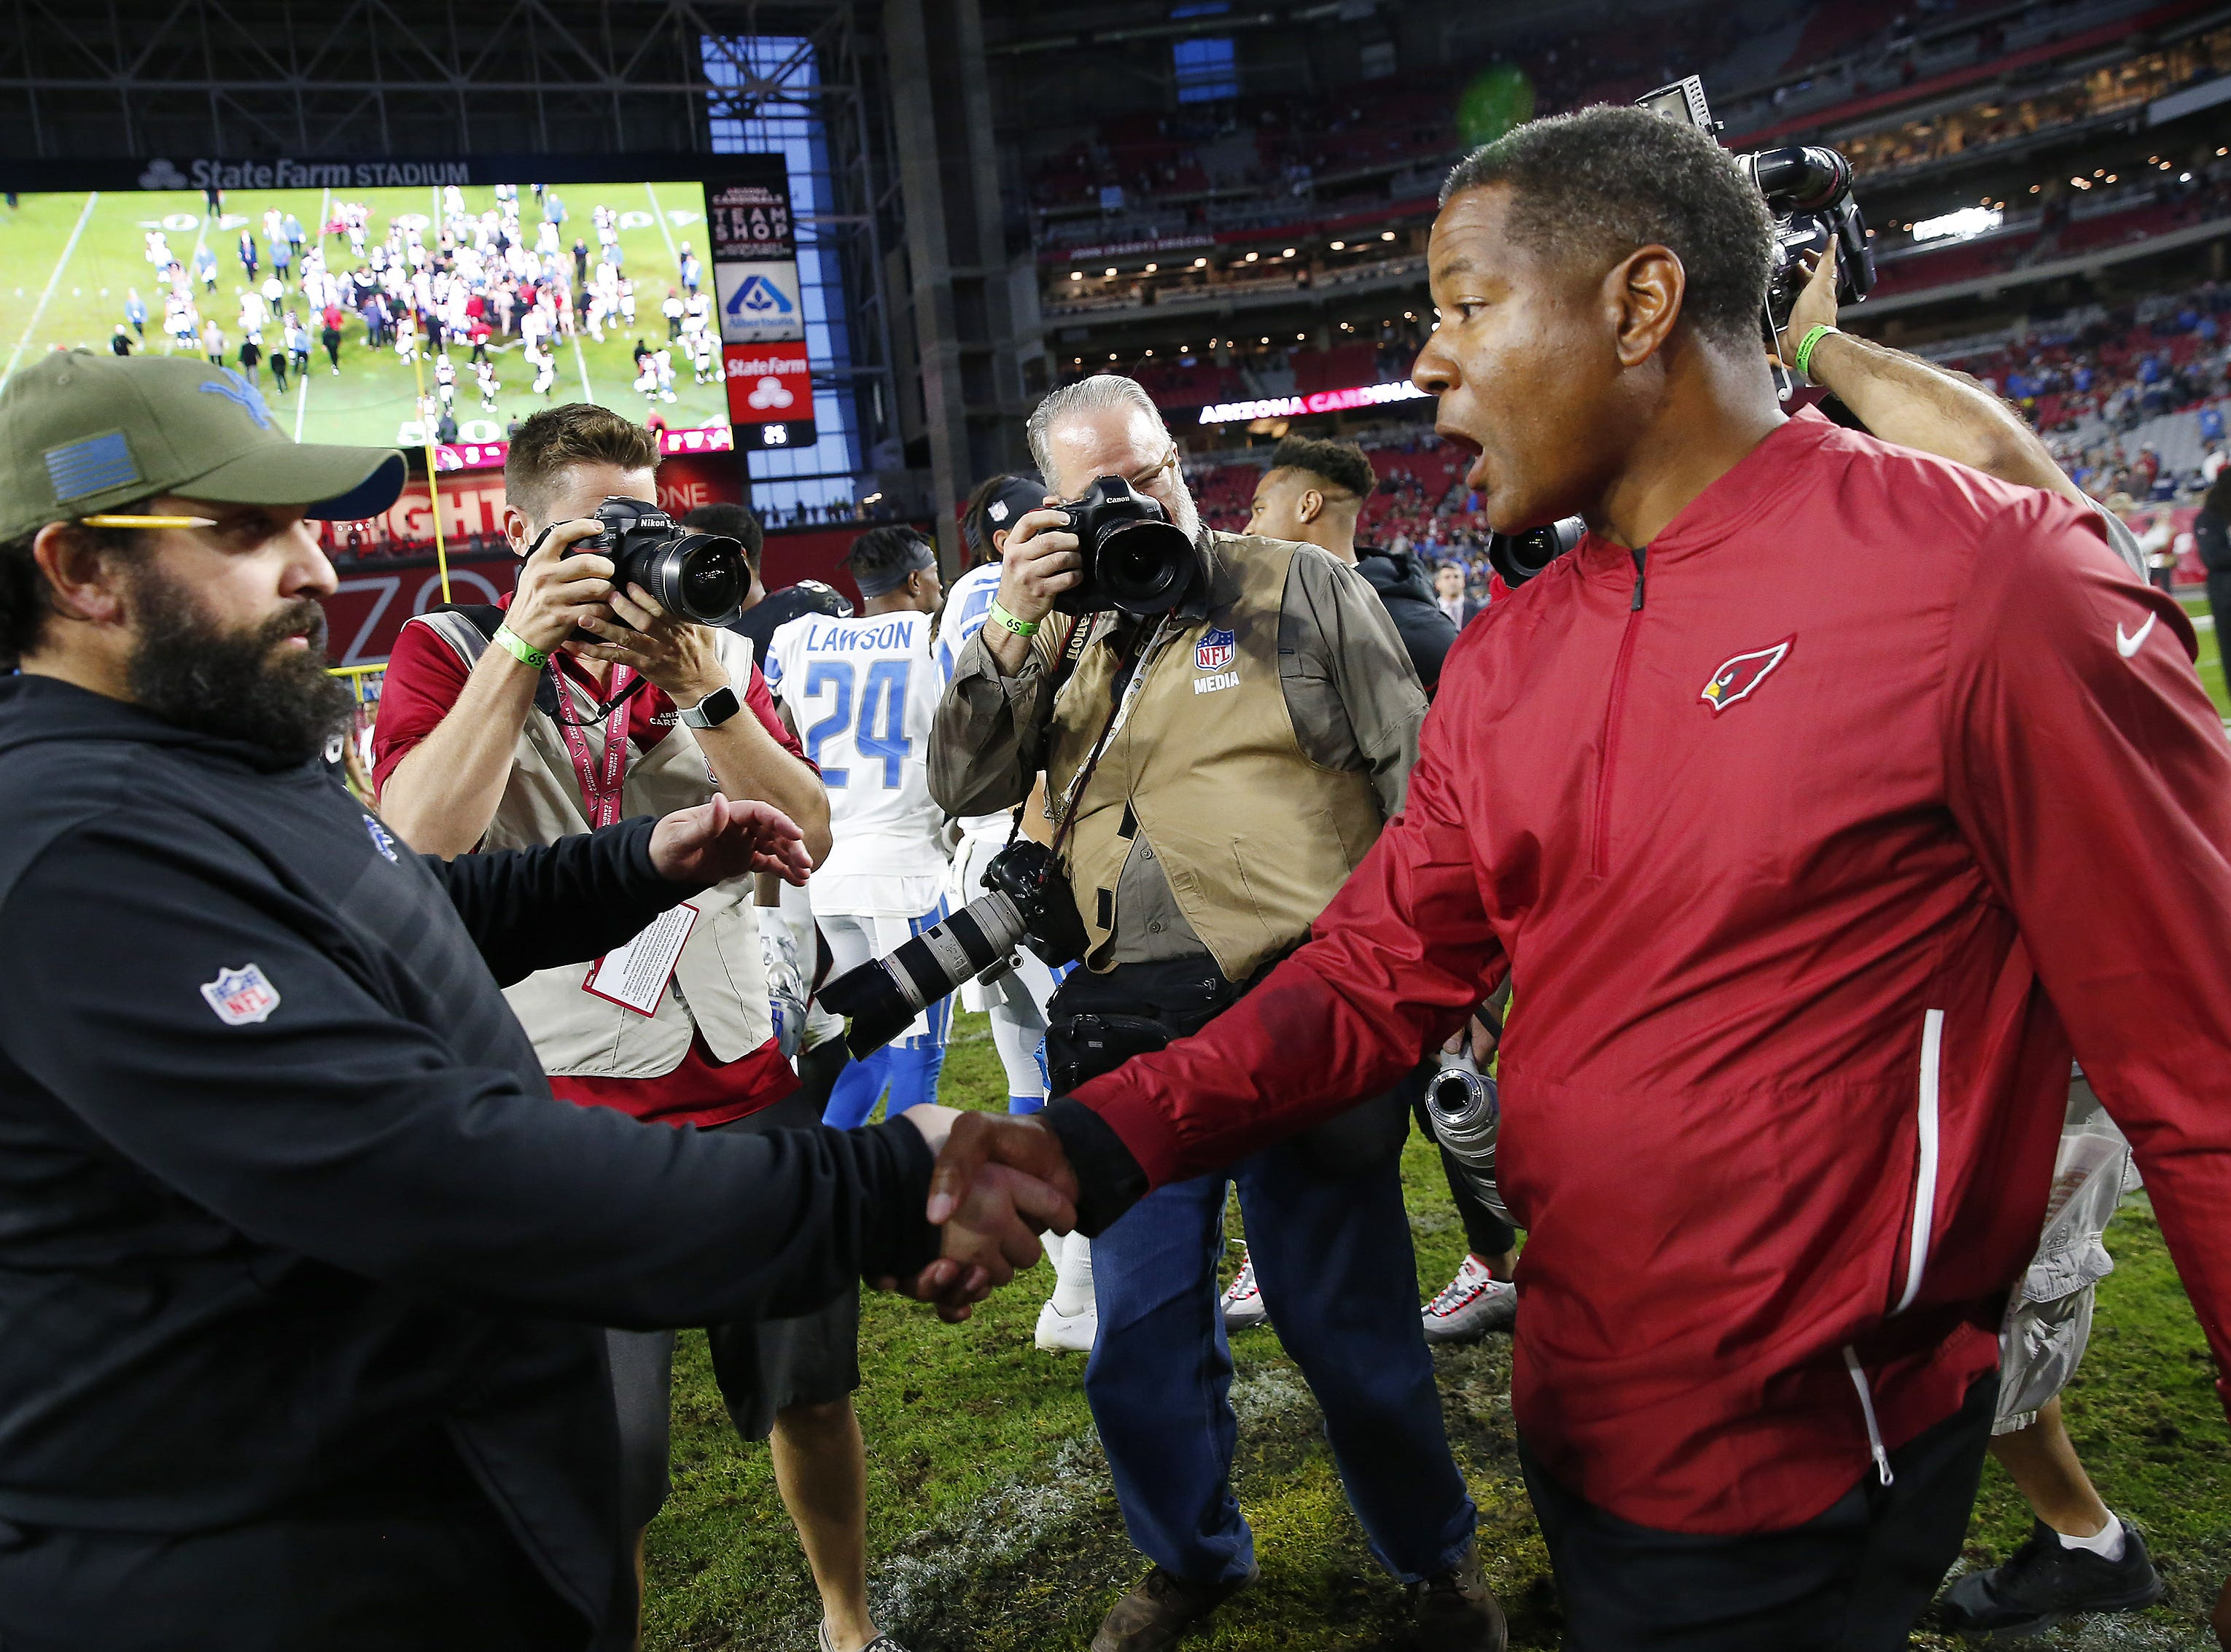 Detroit Lions head coach Matt Patricia shakes hands with Arizona Cardinals head coach Steve Wilks after the Lions won 17-3 in Glendale, Ariz. December 9.